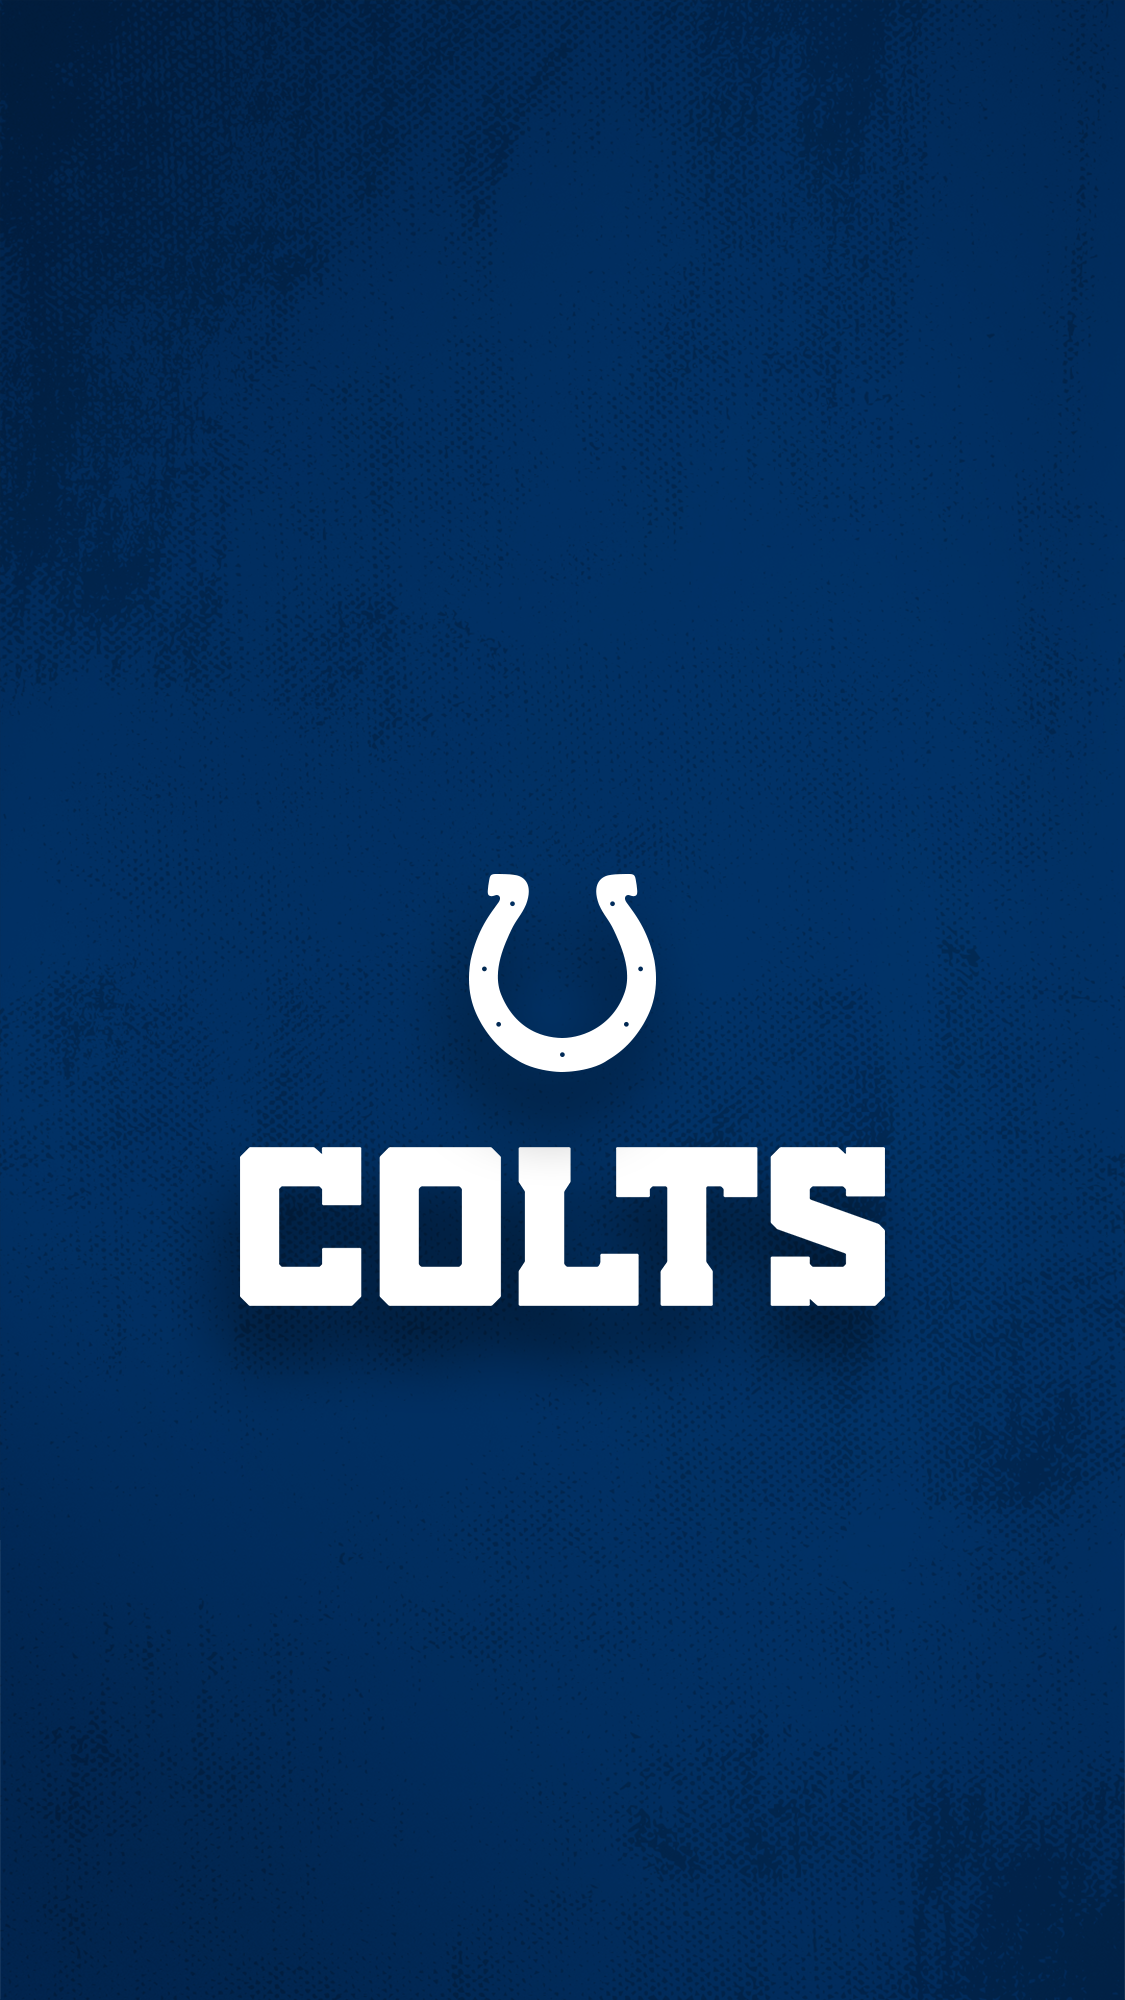 2020_Brand_Update_wallpapers_Horseshoe_colts_blue_1080x1920-